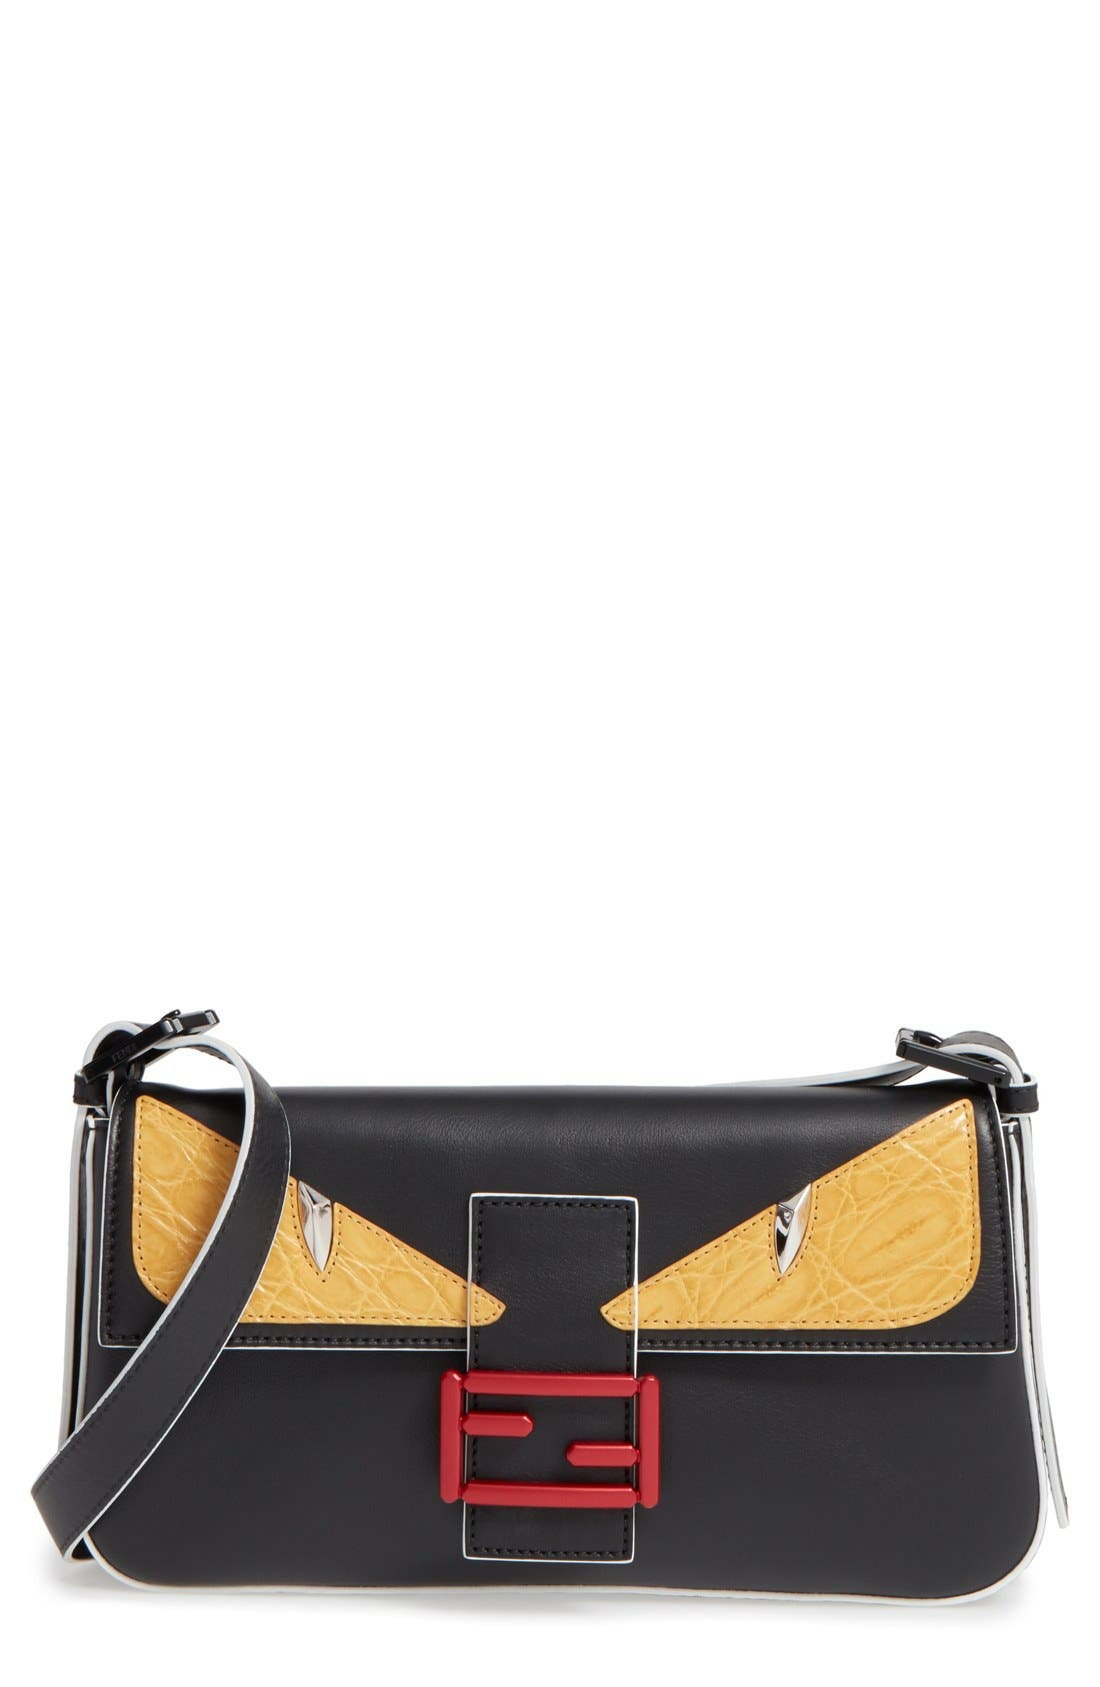 FENDI, 'Mini Monster' Leather Baguette, Main thumbnail 1, color, 001